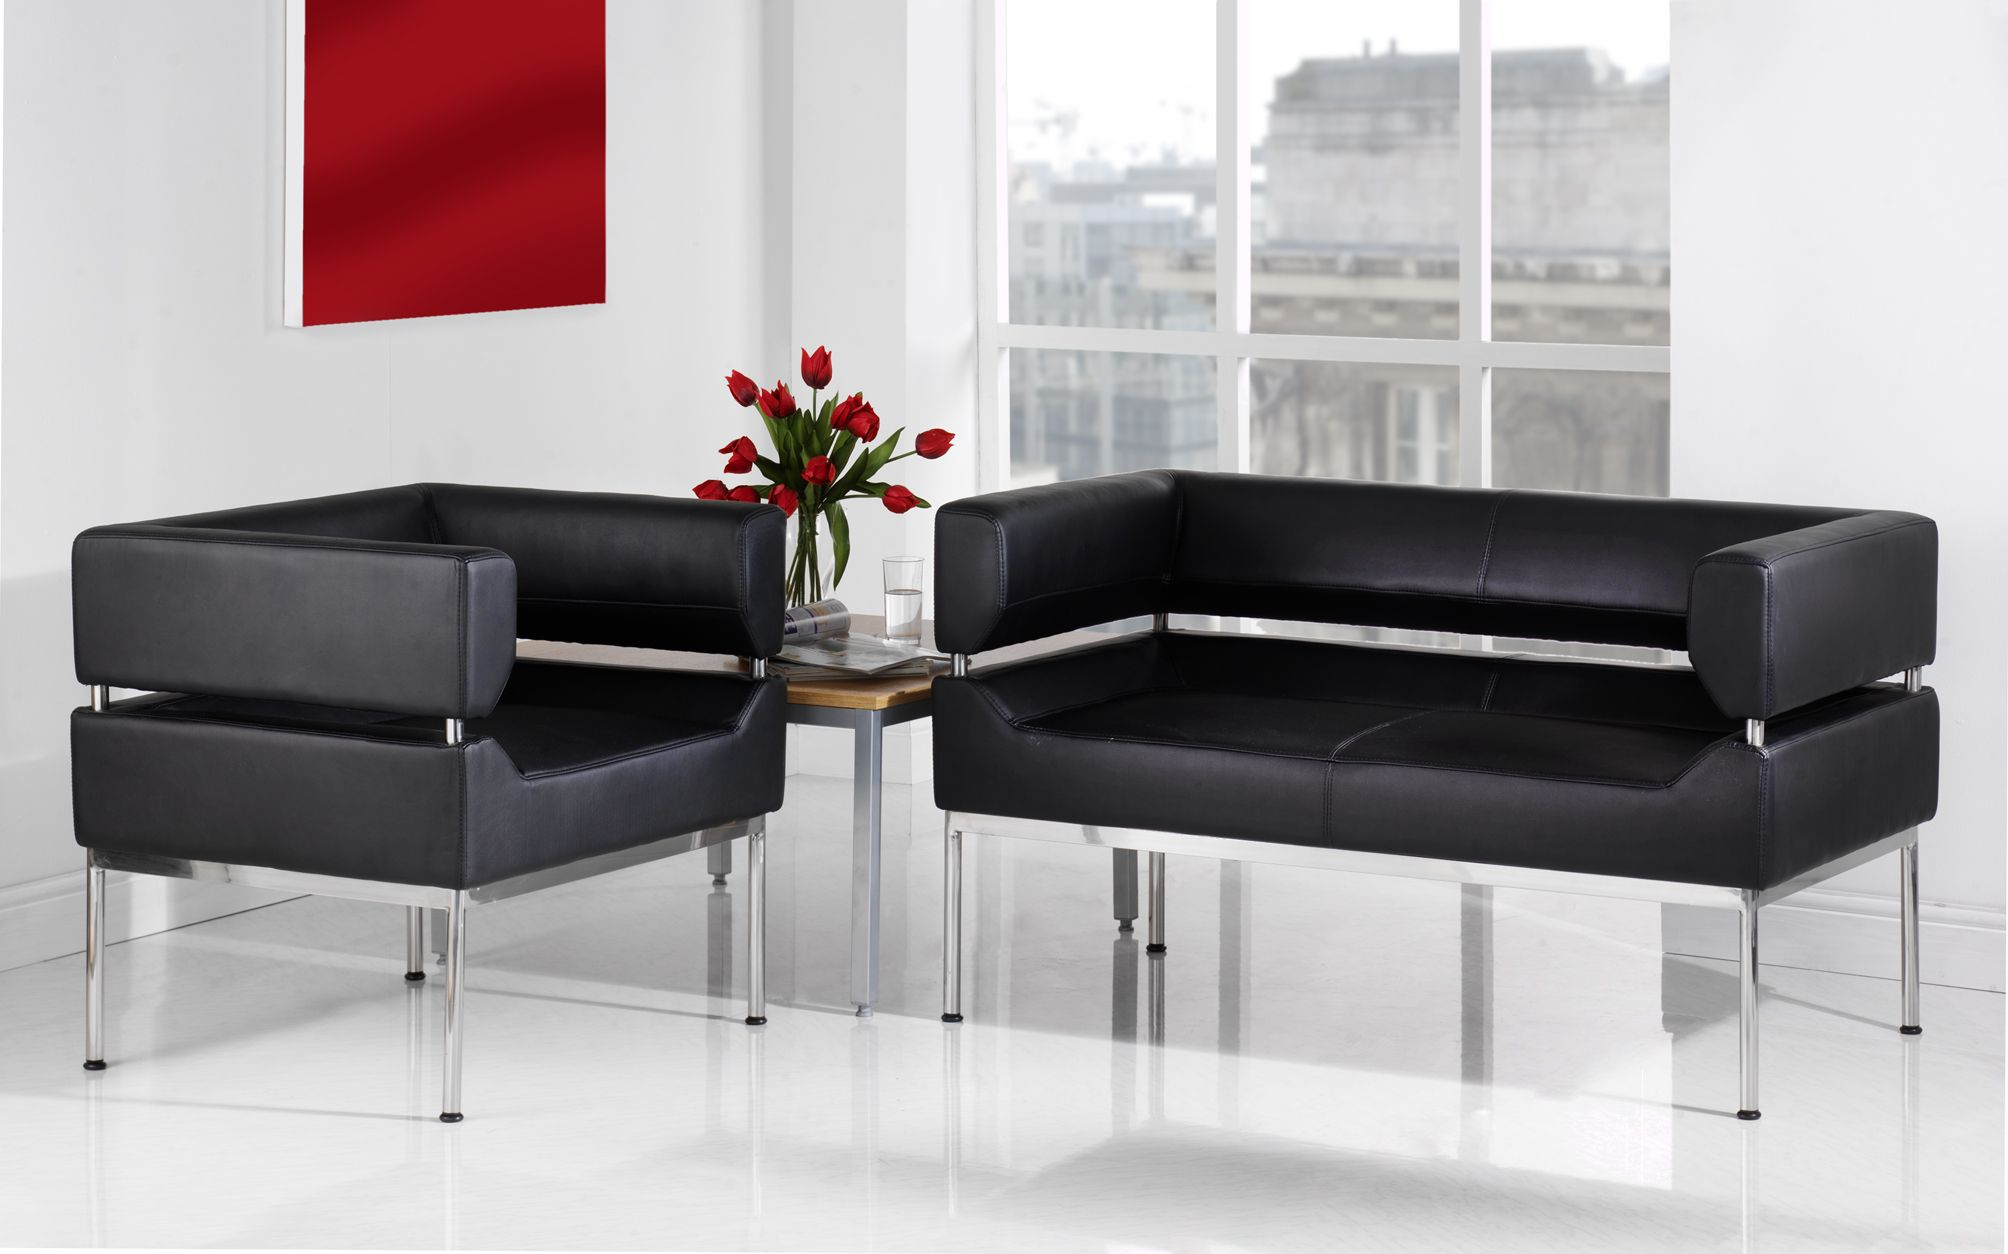 Cool Small Couch For Office Luxury Small Couch For Office 55 For